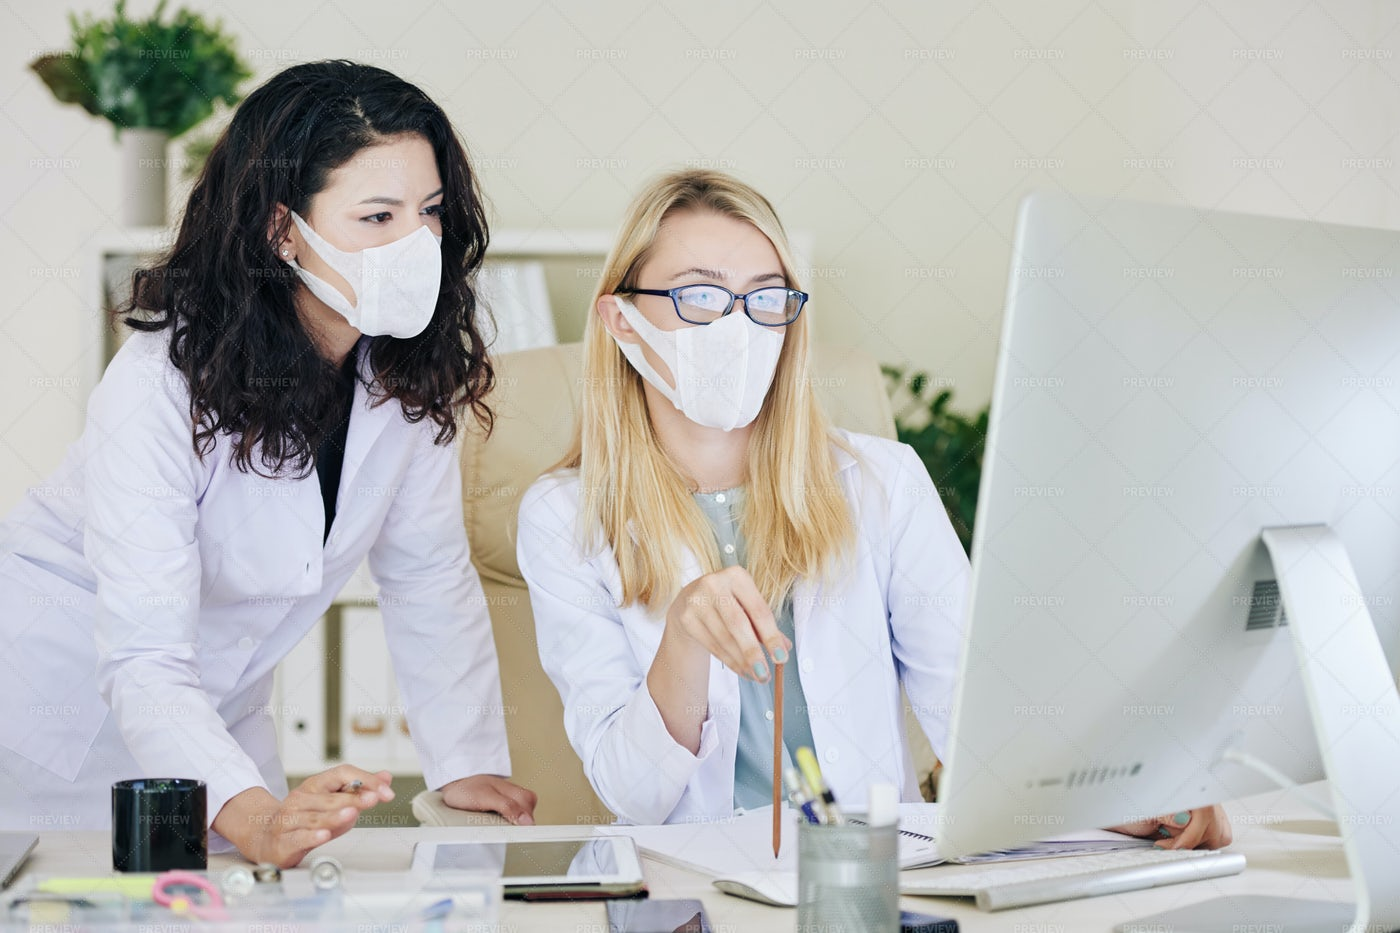 Laboratory Researchers Discussing Tests: Stock Photos